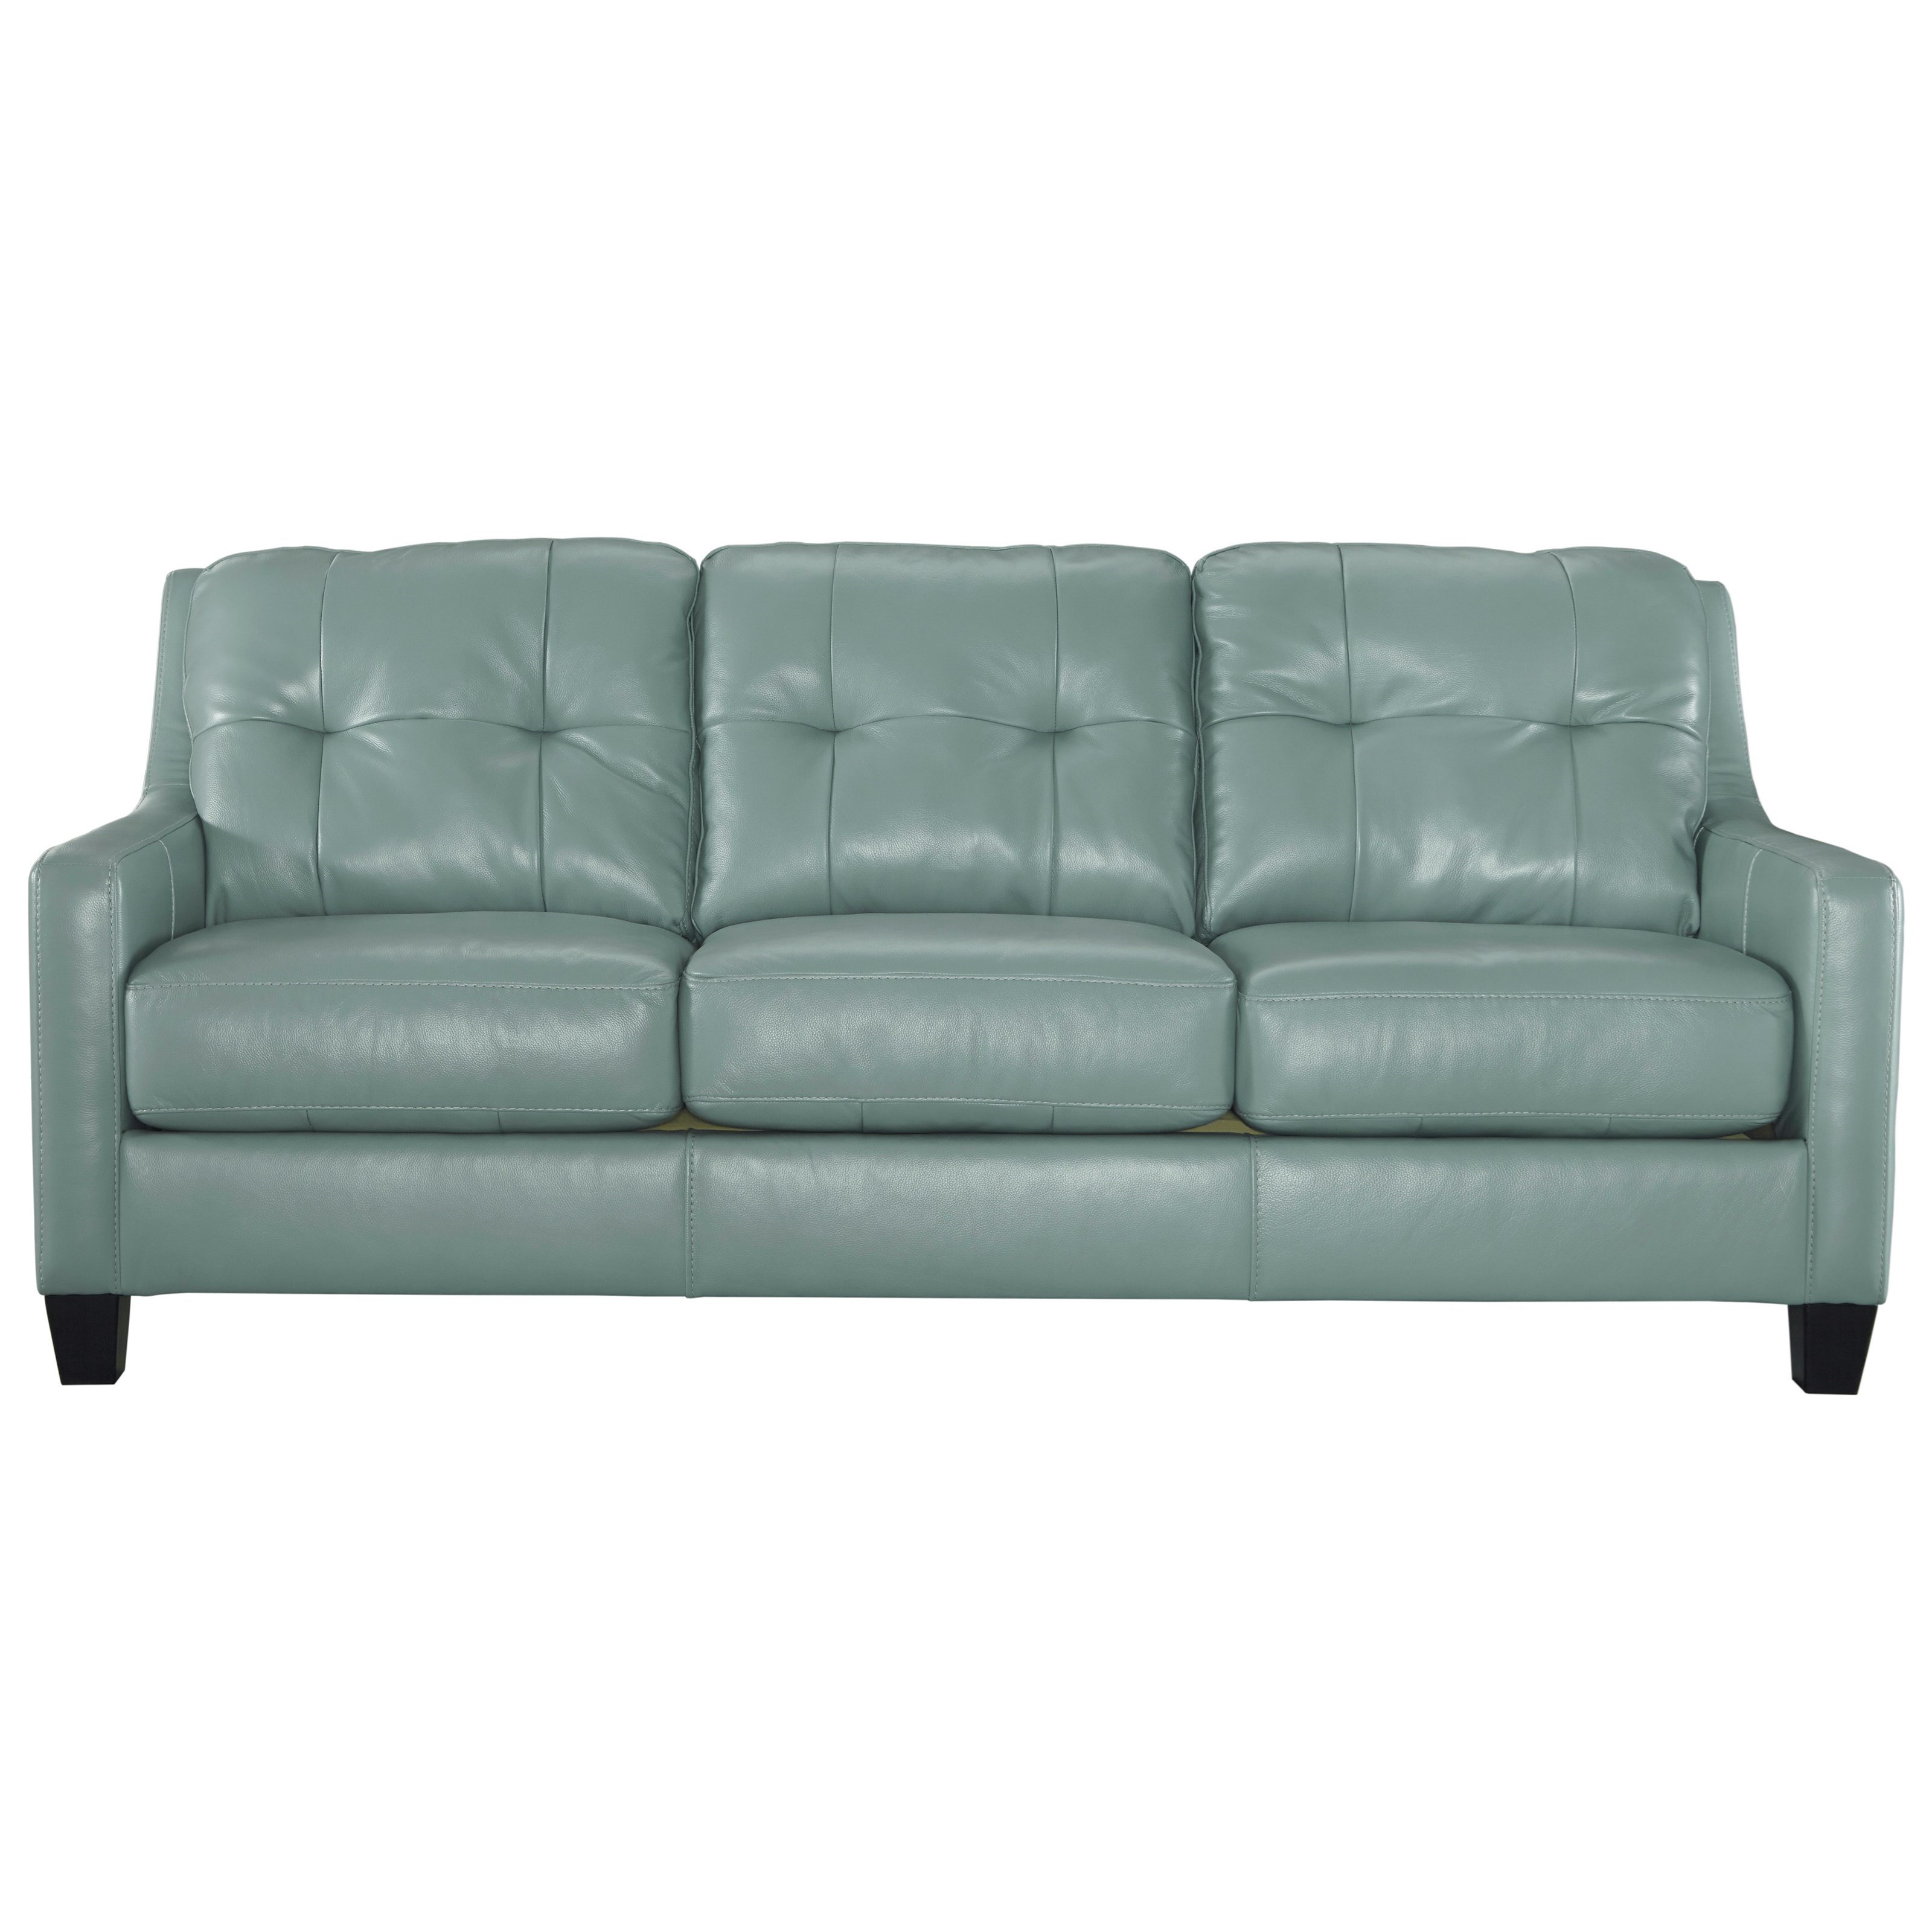 Black Leather Sofa Jcpenney: Ashley Signature Design Sofa Signature Design By Ashley Madeline Fabric Pad Arm Sofa Jcpenney